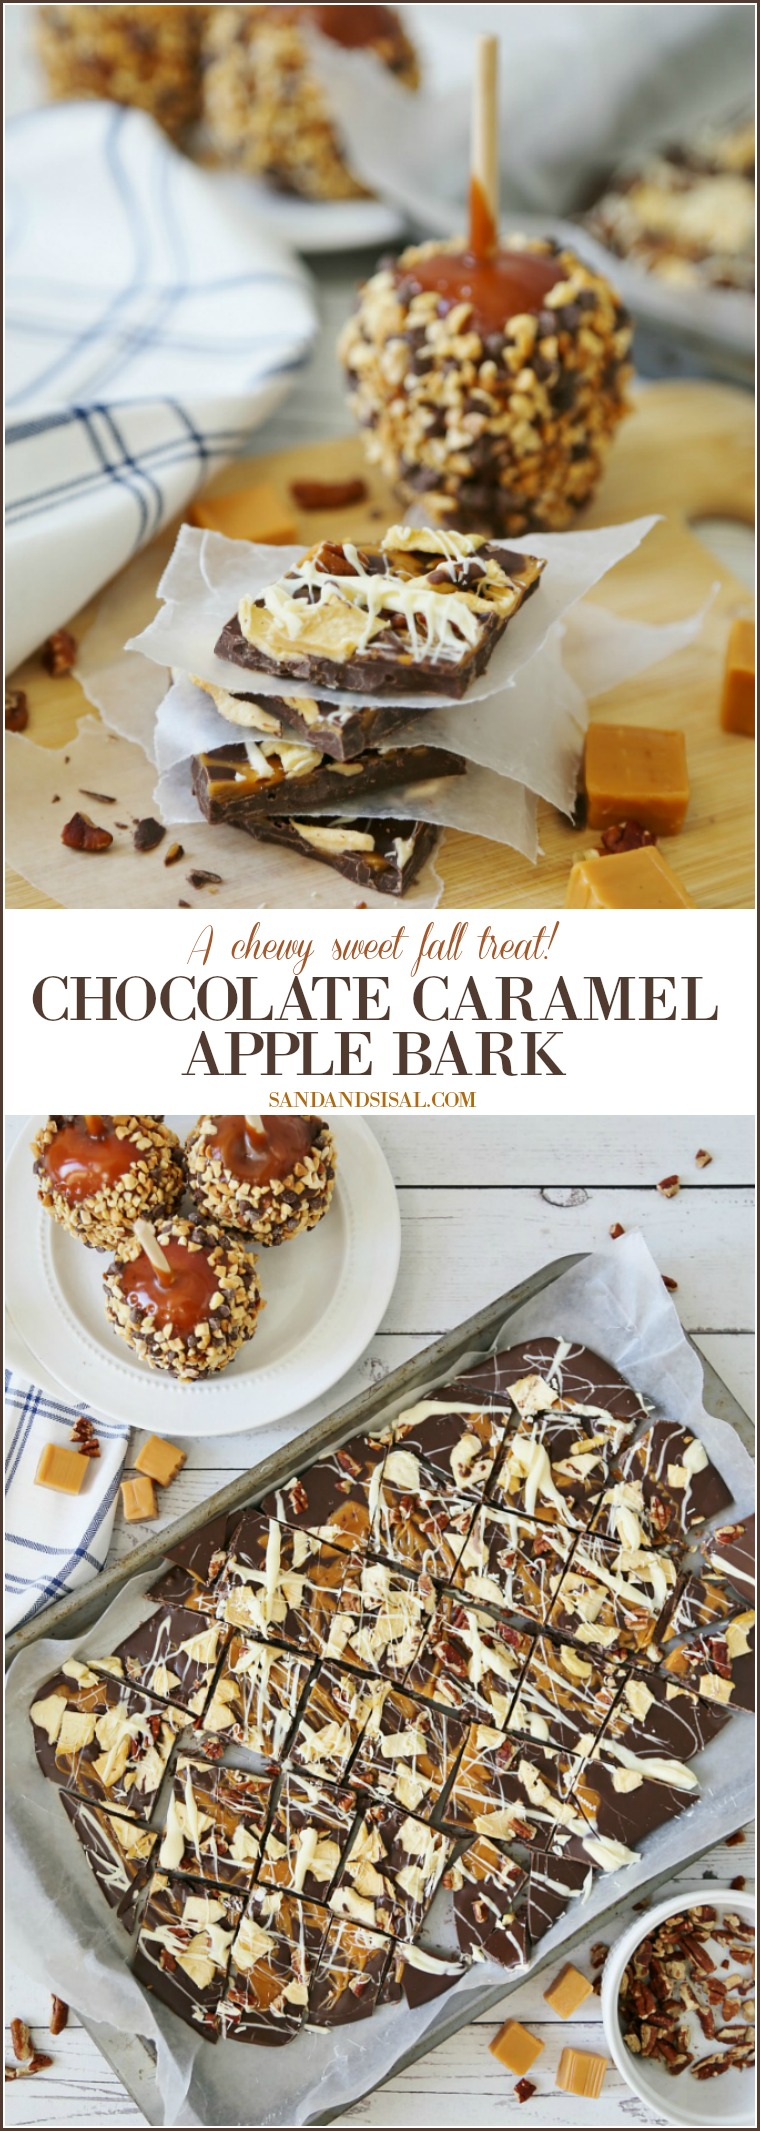 Chocolate Caramel Apple Bark Recipe